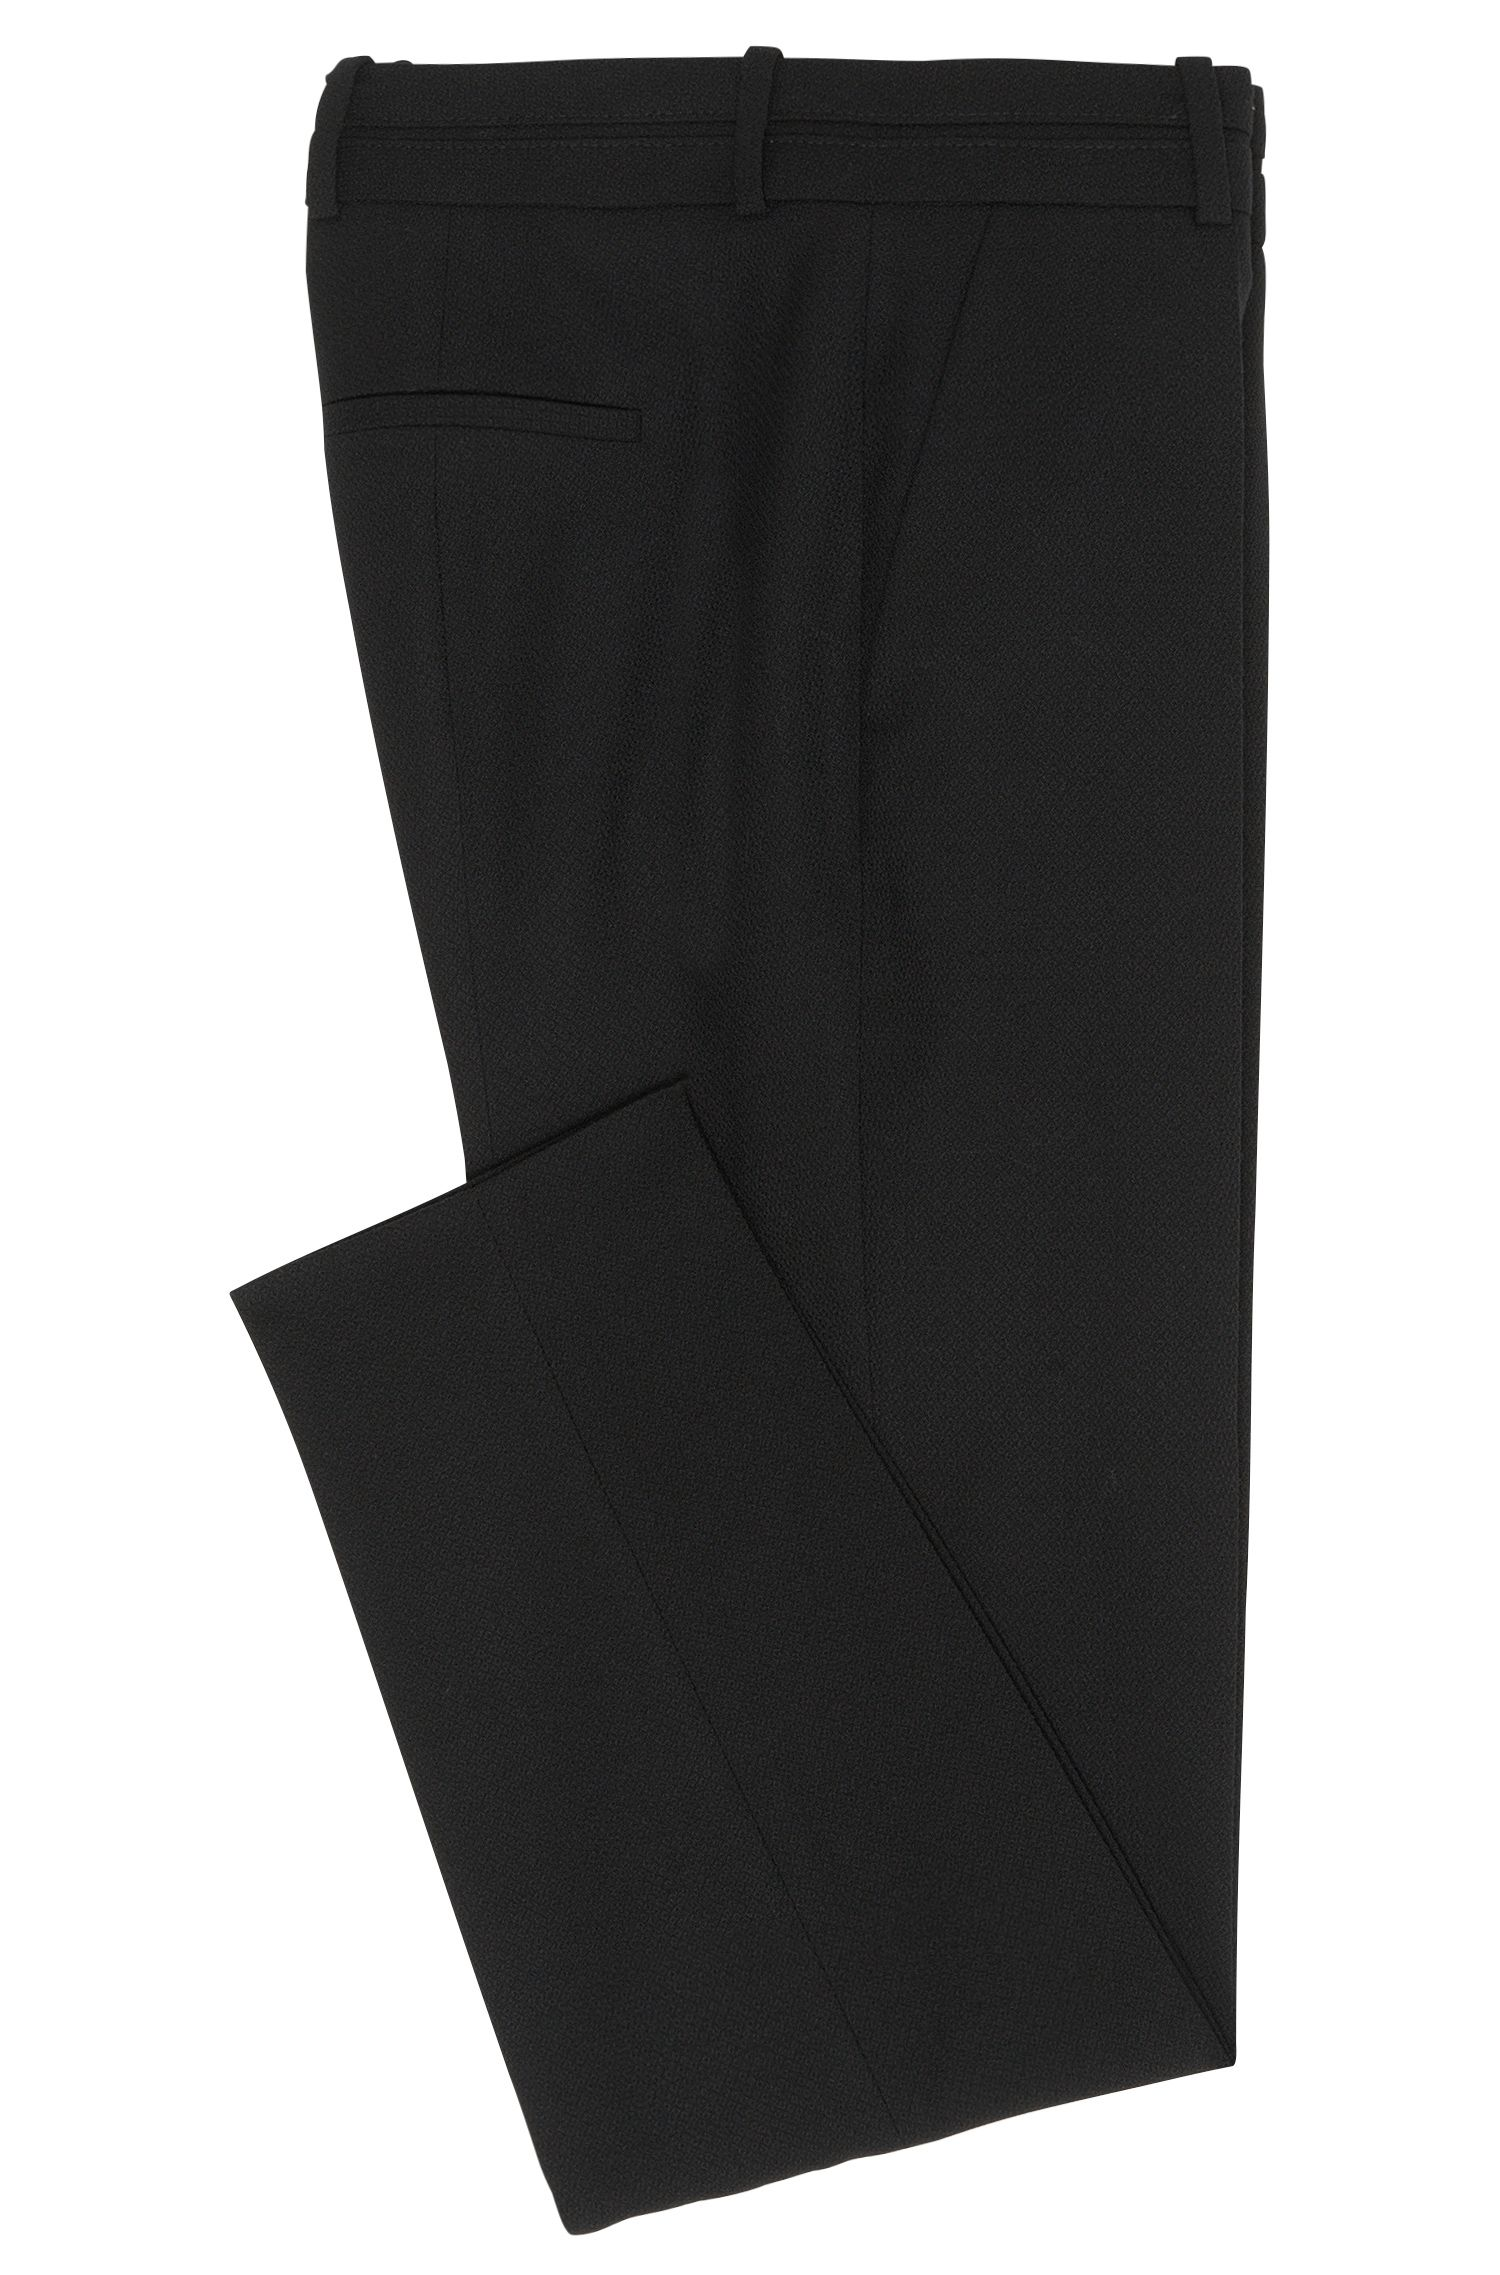 Low-Waisted Hose aus Stretch-Schurwolle: 'Haluna'